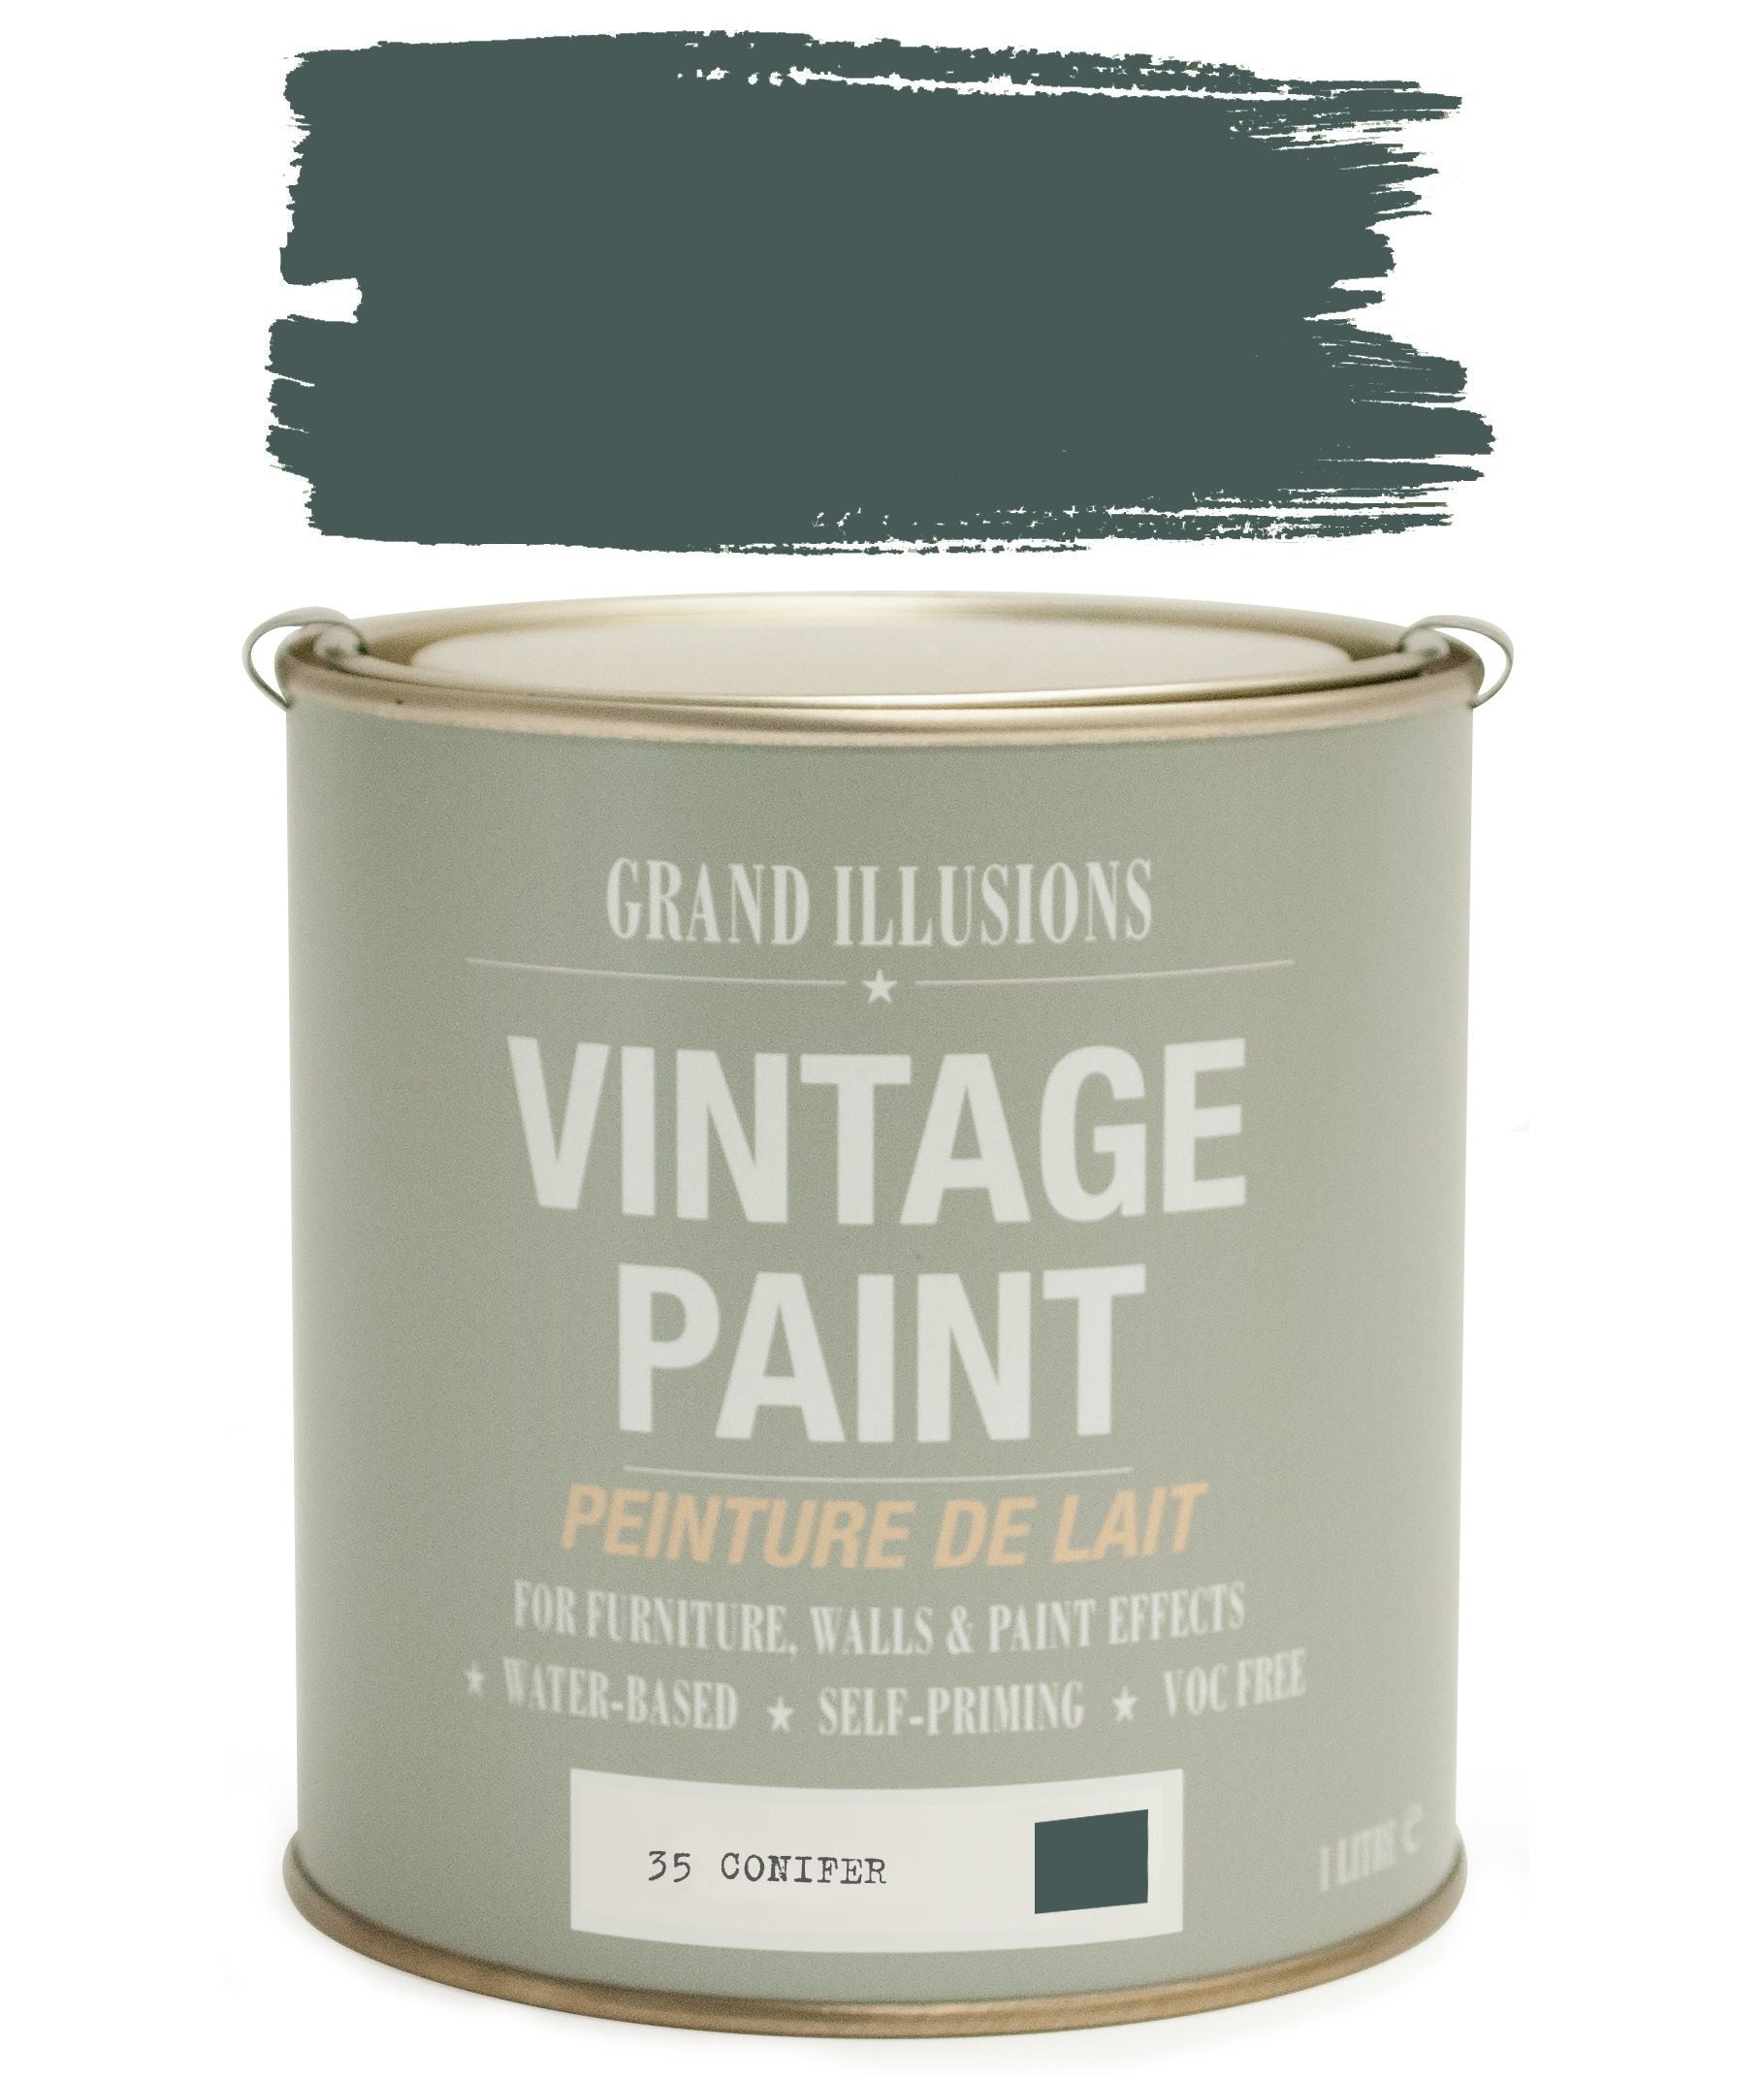 Vintage Paint No.35 Conifer